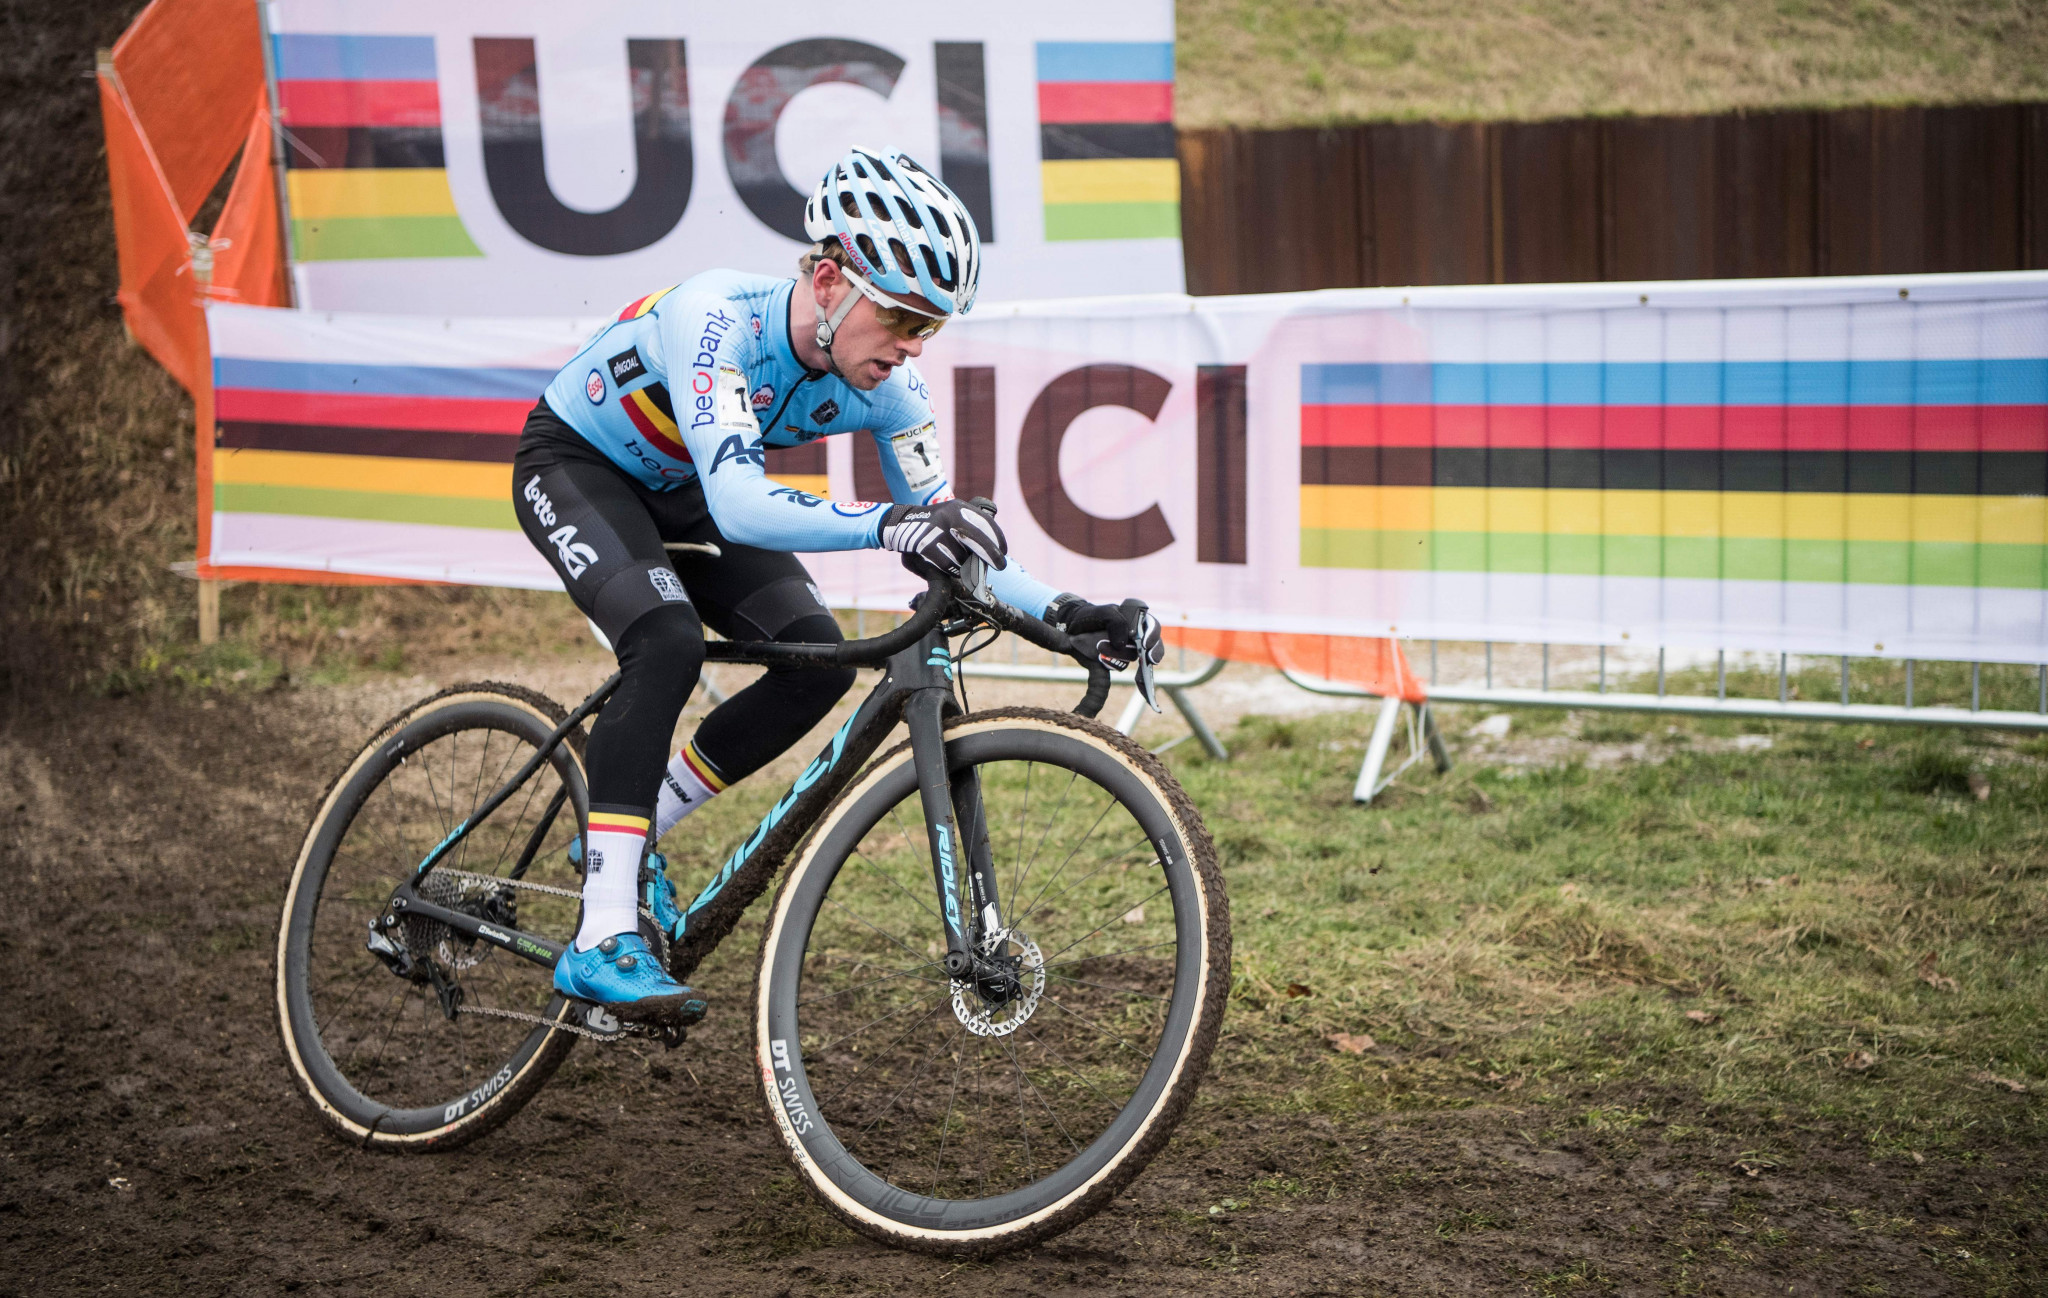 Iserbyt and Van der Poel set for duel at UCI Cyclocross World Cup in Tabor